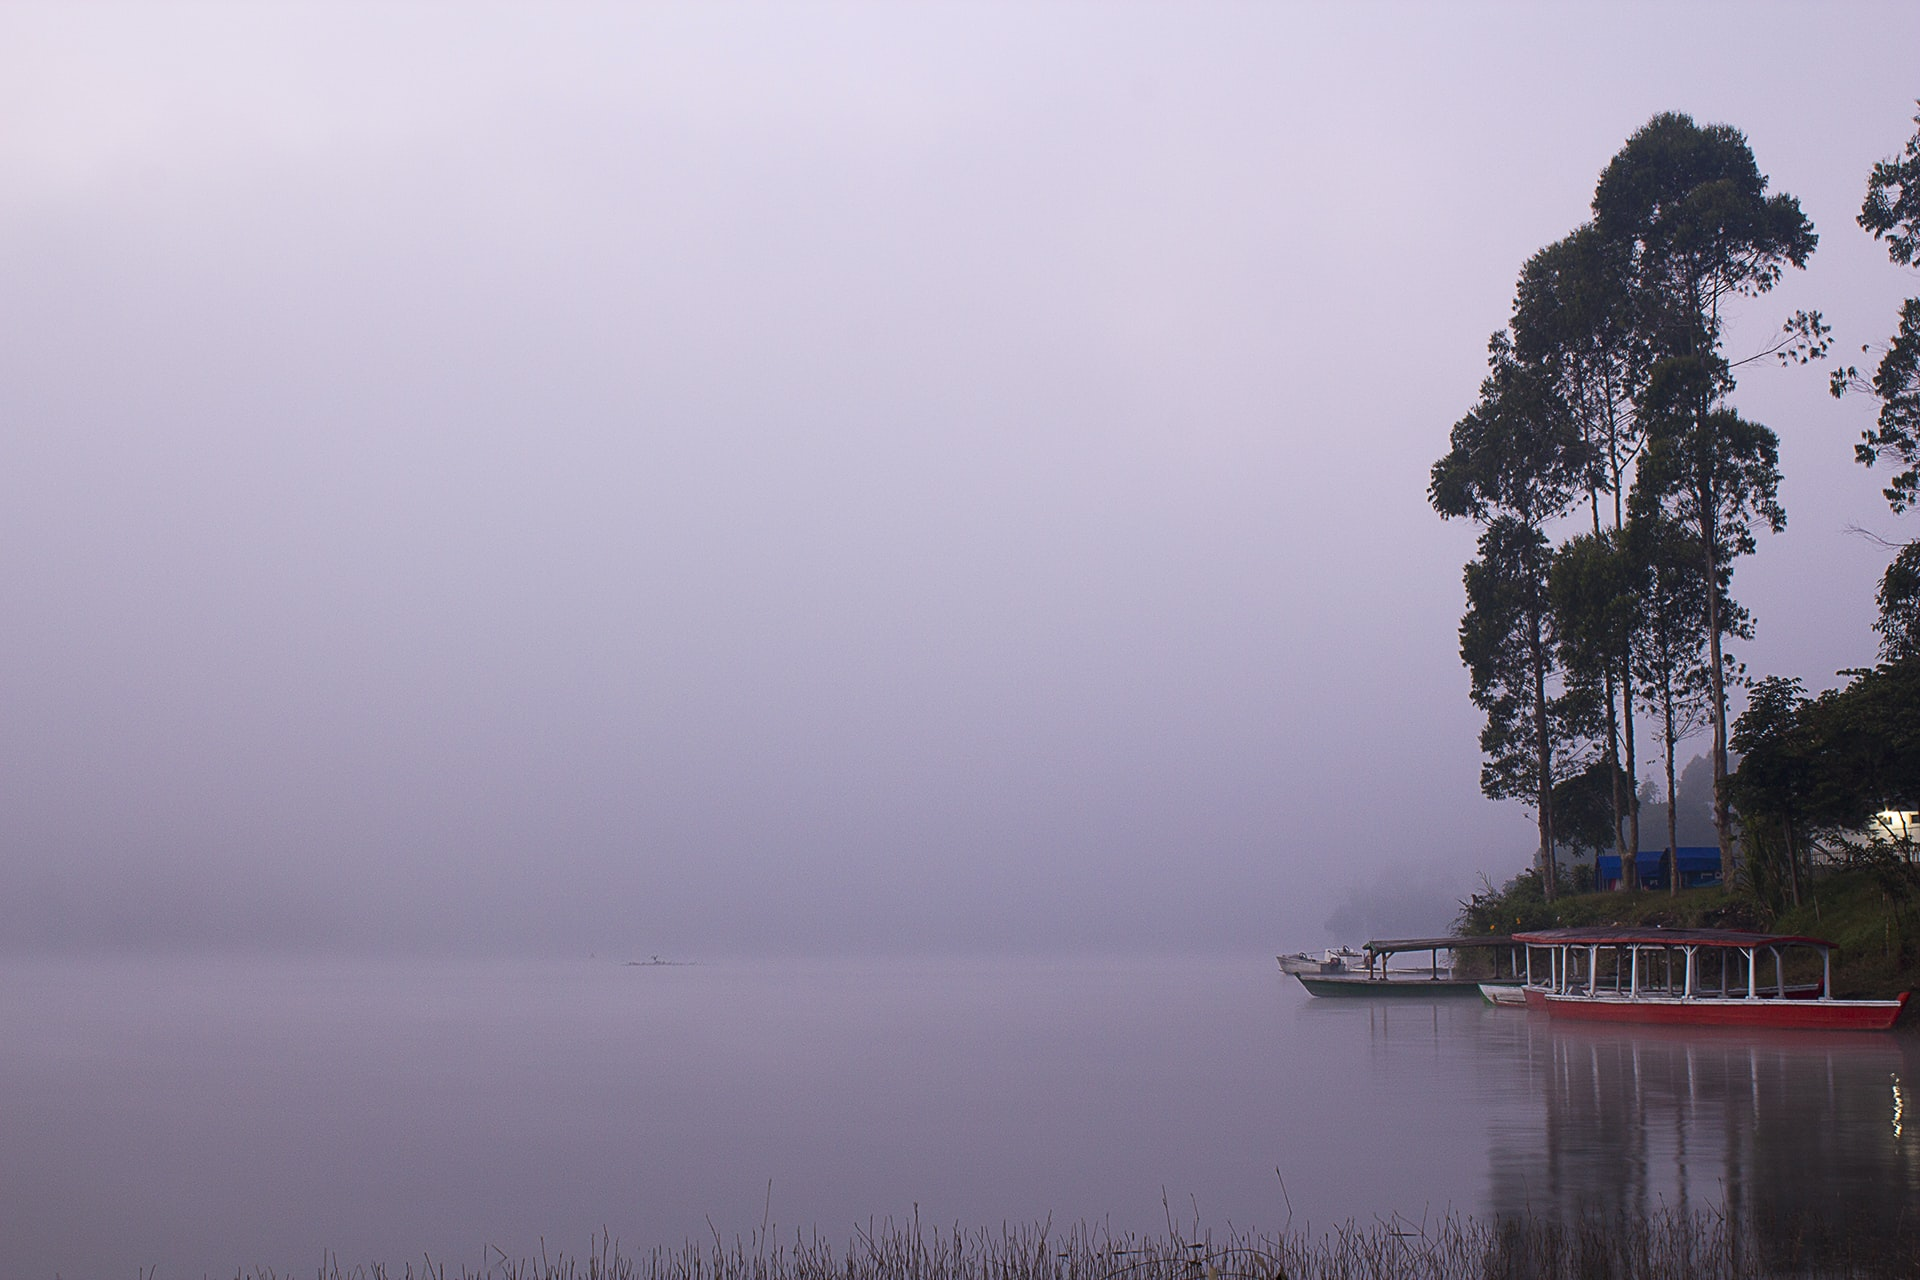 Boats docked on a woodsy shore on a misty lake